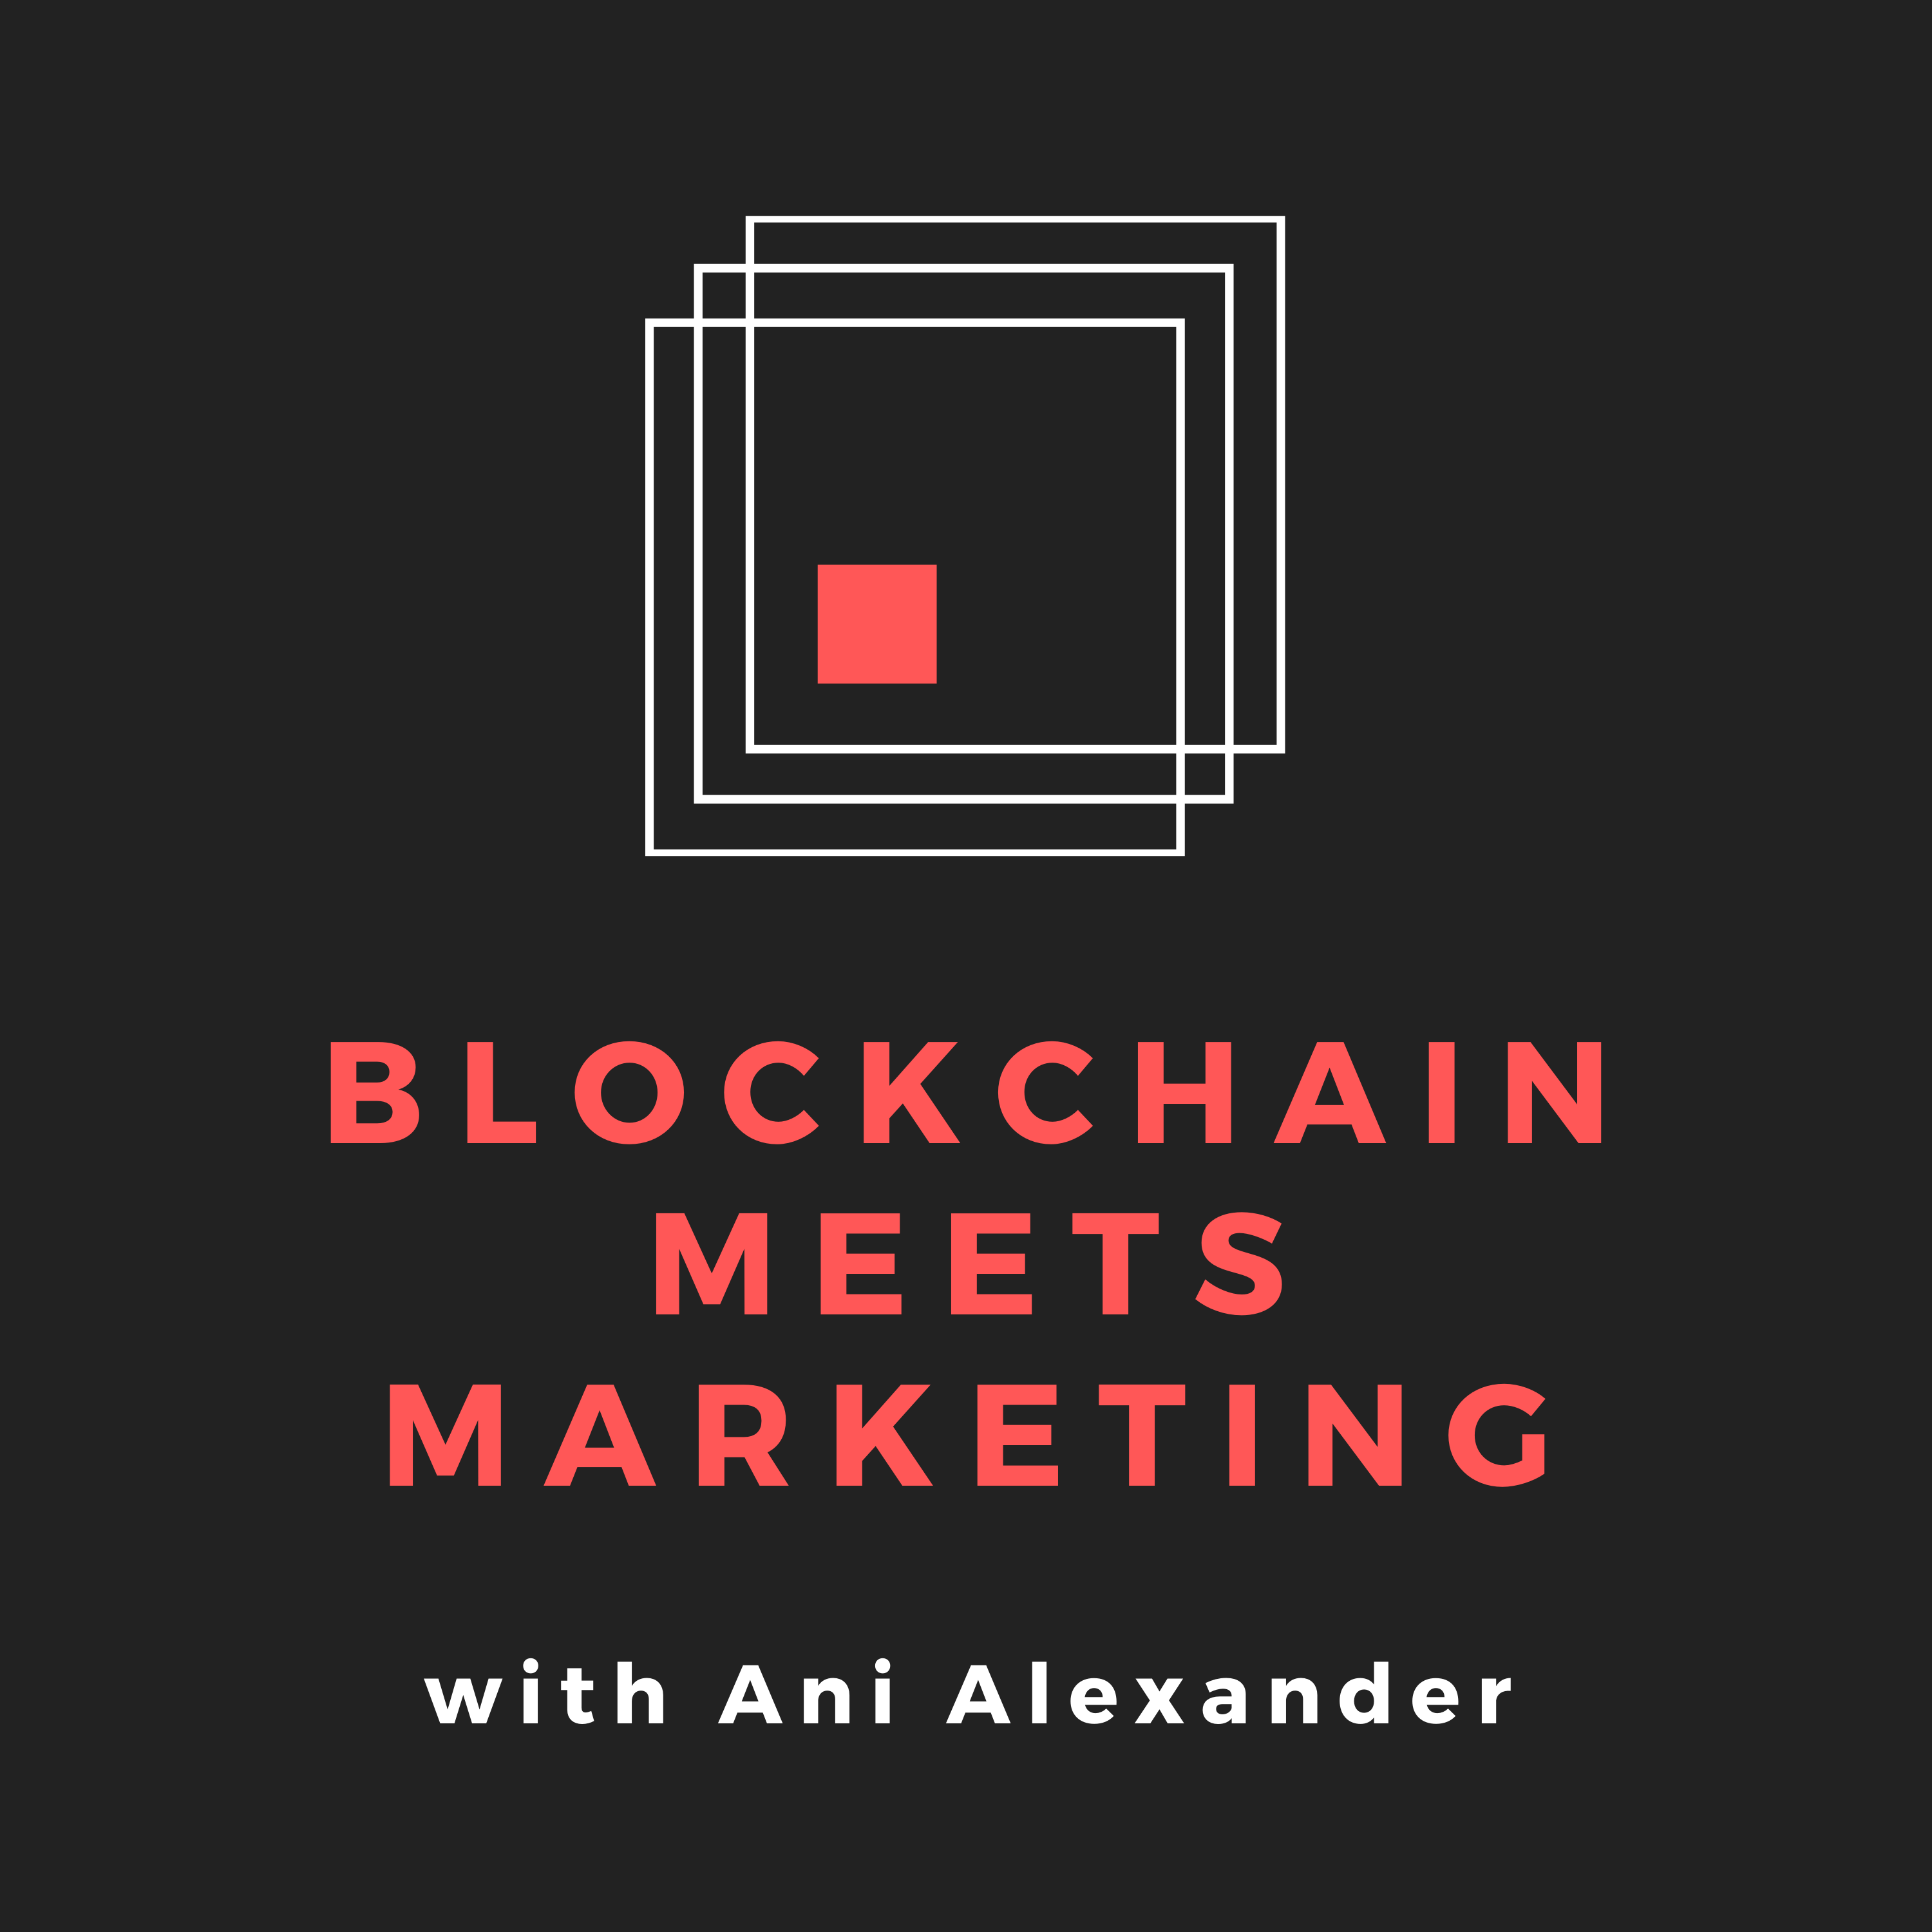 What role should blockchain play in your marketing?